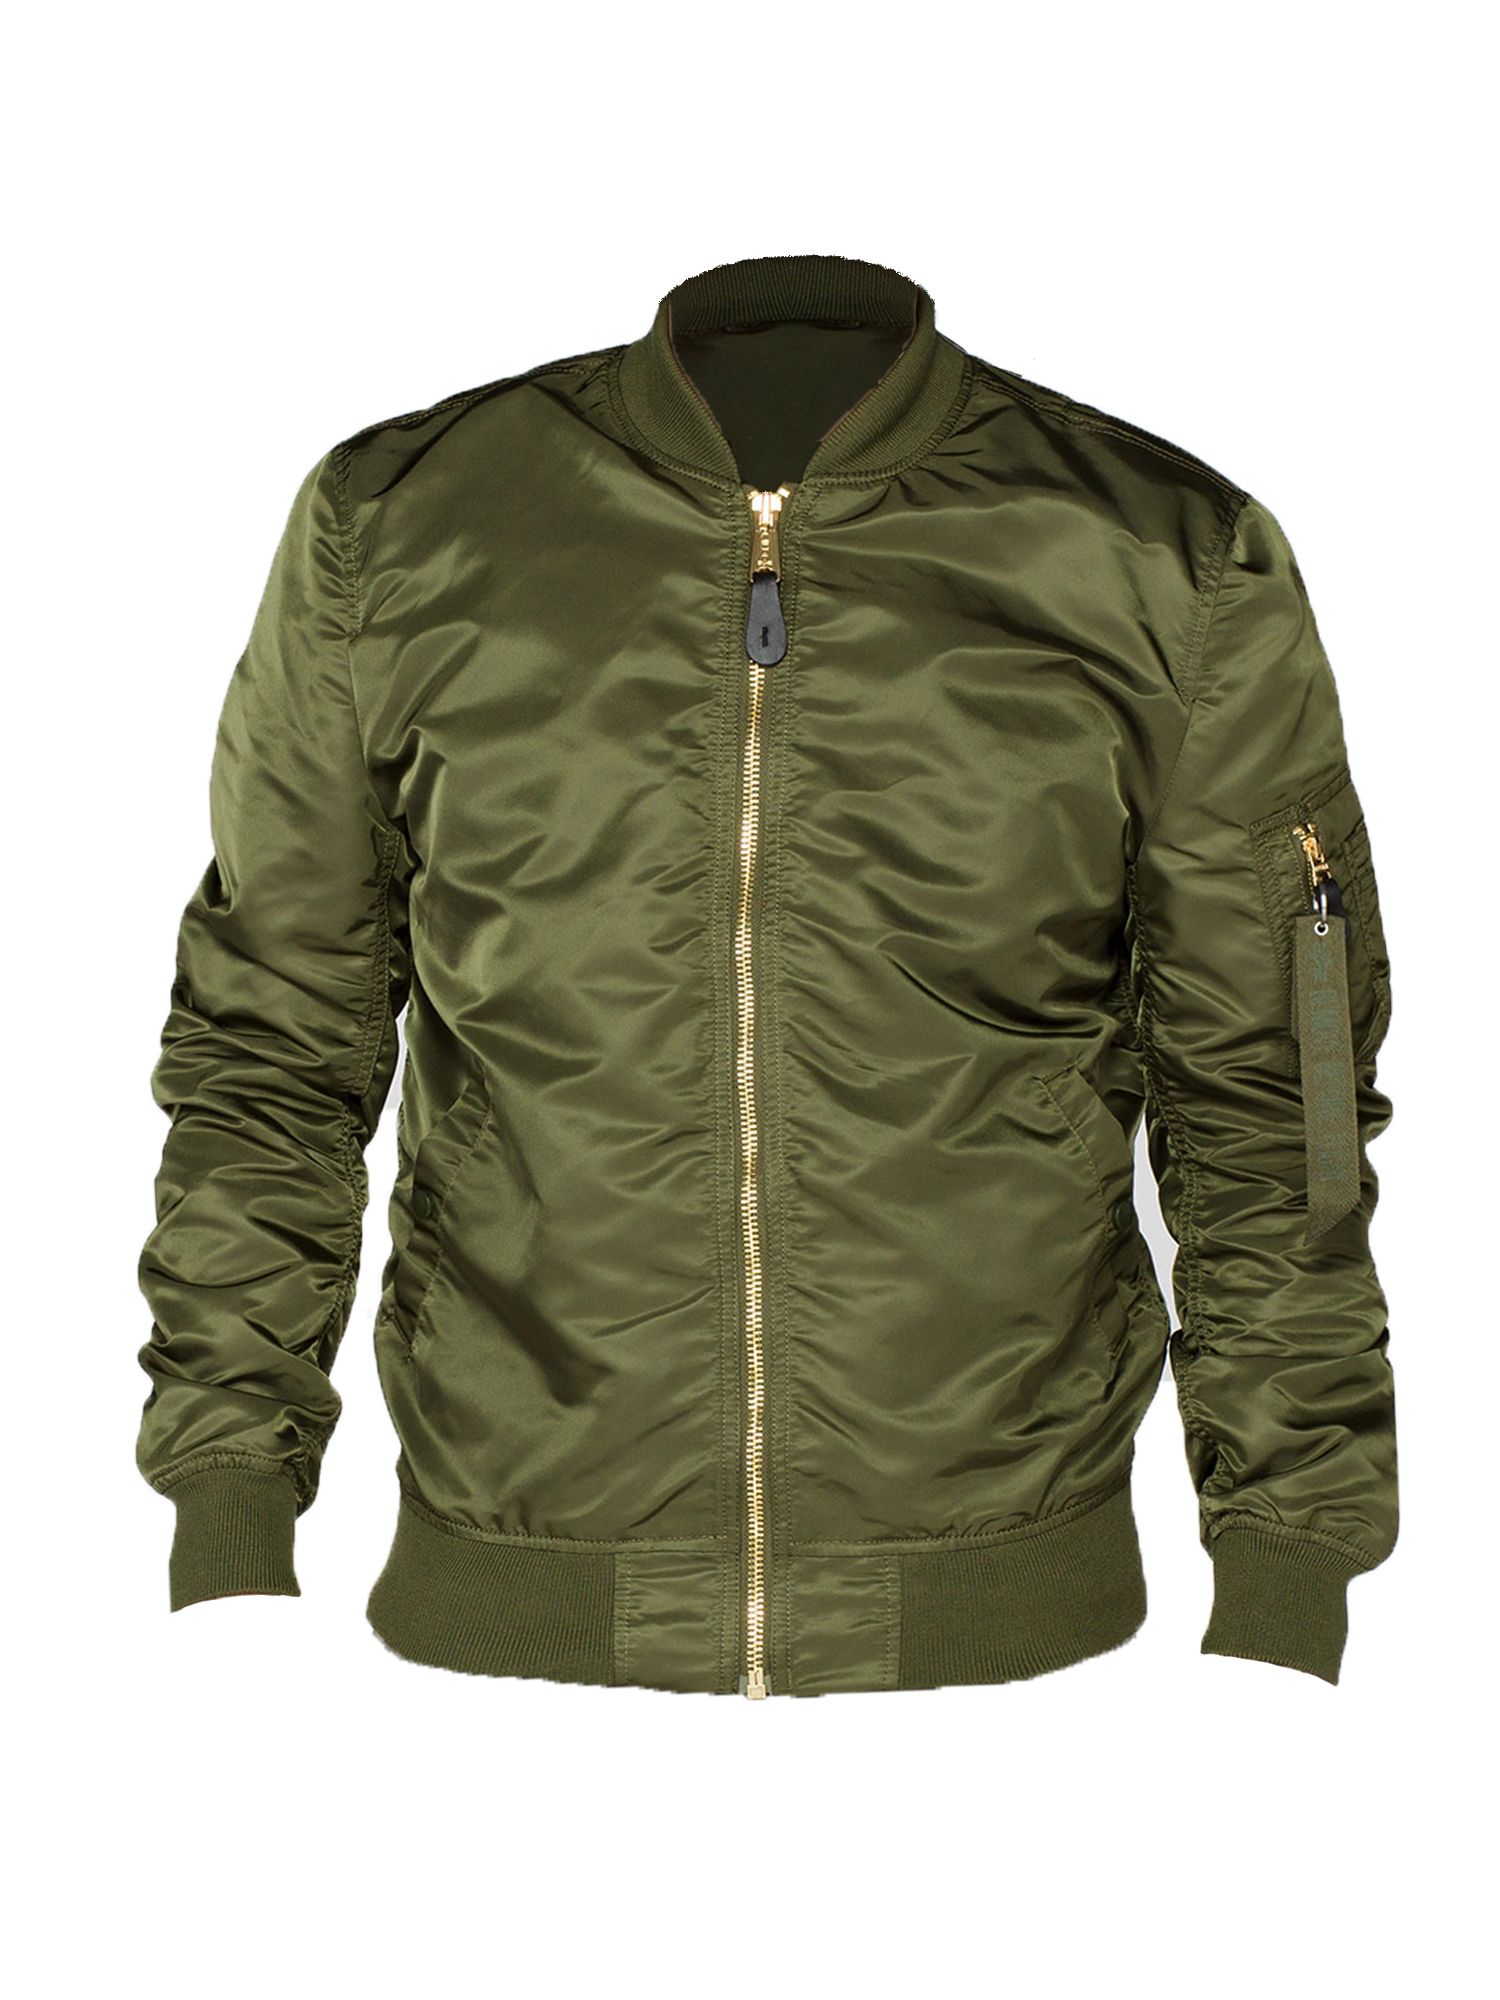 Alpha Industries Men's Alpha Industries Ma-1 vf lw jacket, Dark Green